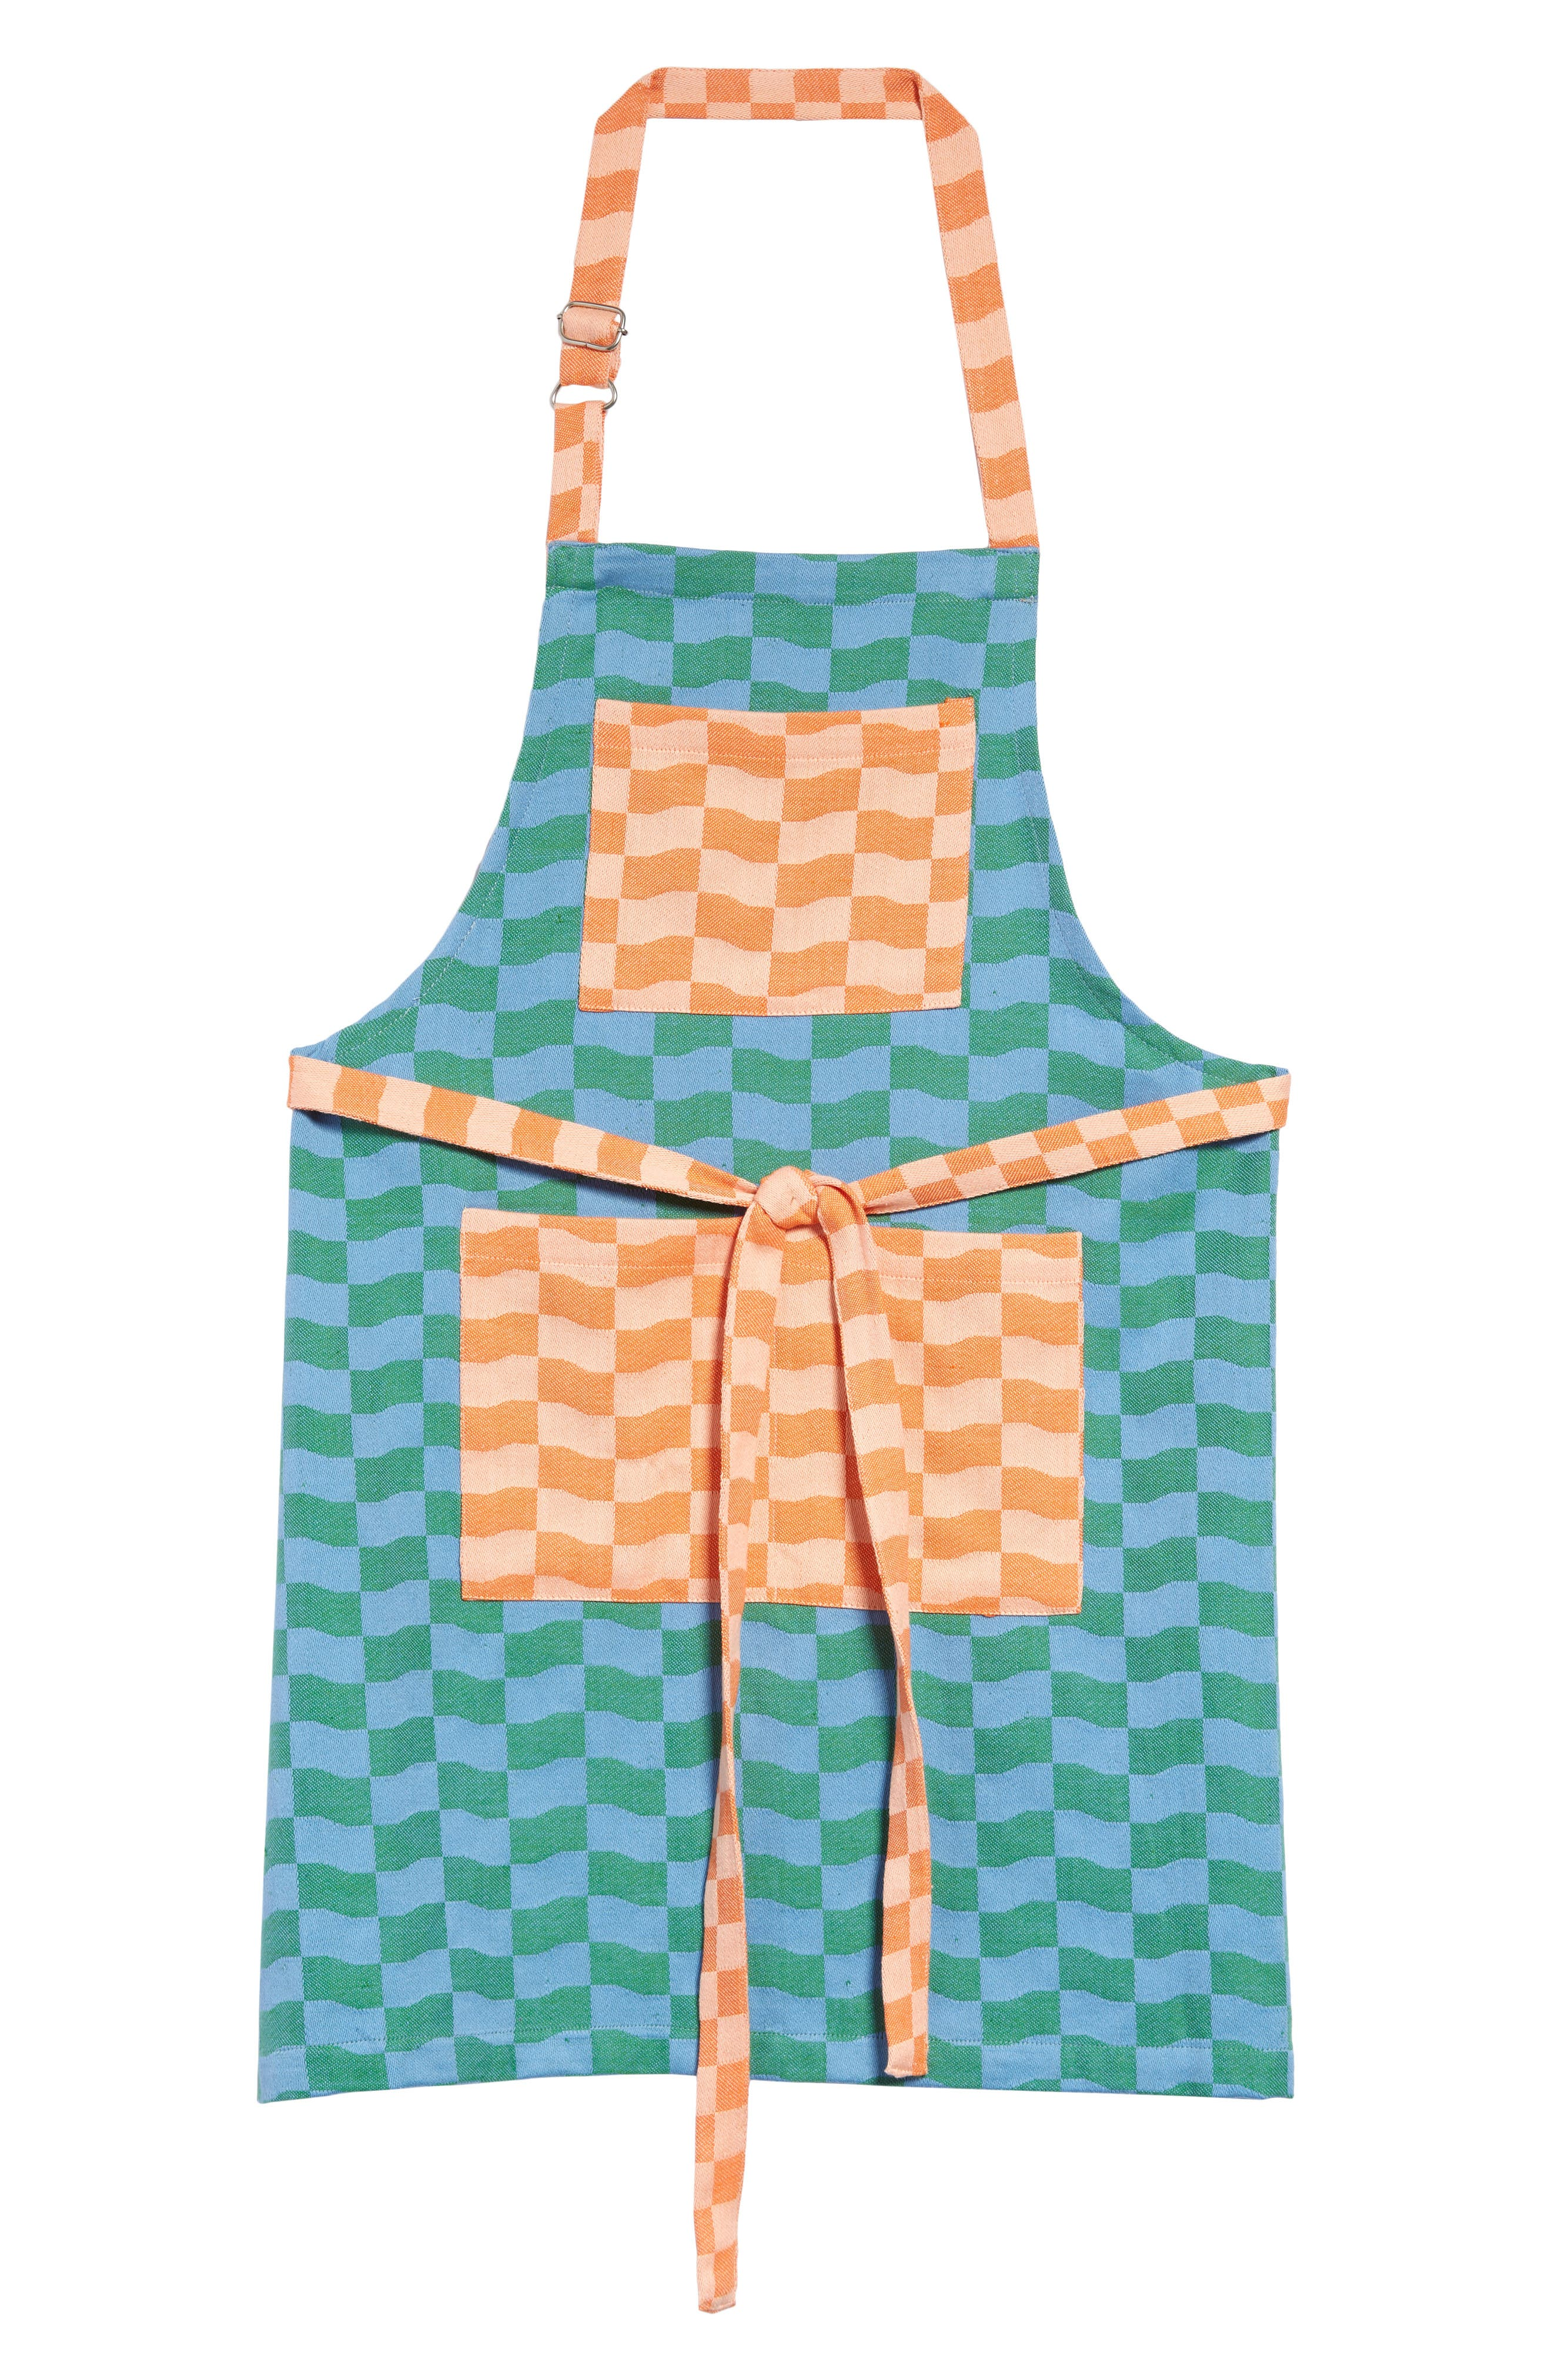 Exclusively at Nordstrom, this woven cotton apron with roomy pockets for stowing utensils showcases designer Ellen Van Dusen\\\'s love of bold color and pattern. Style Name: Dusen Dusen Checkered Tread Apron. Style Number: 6099174. Available in stores.